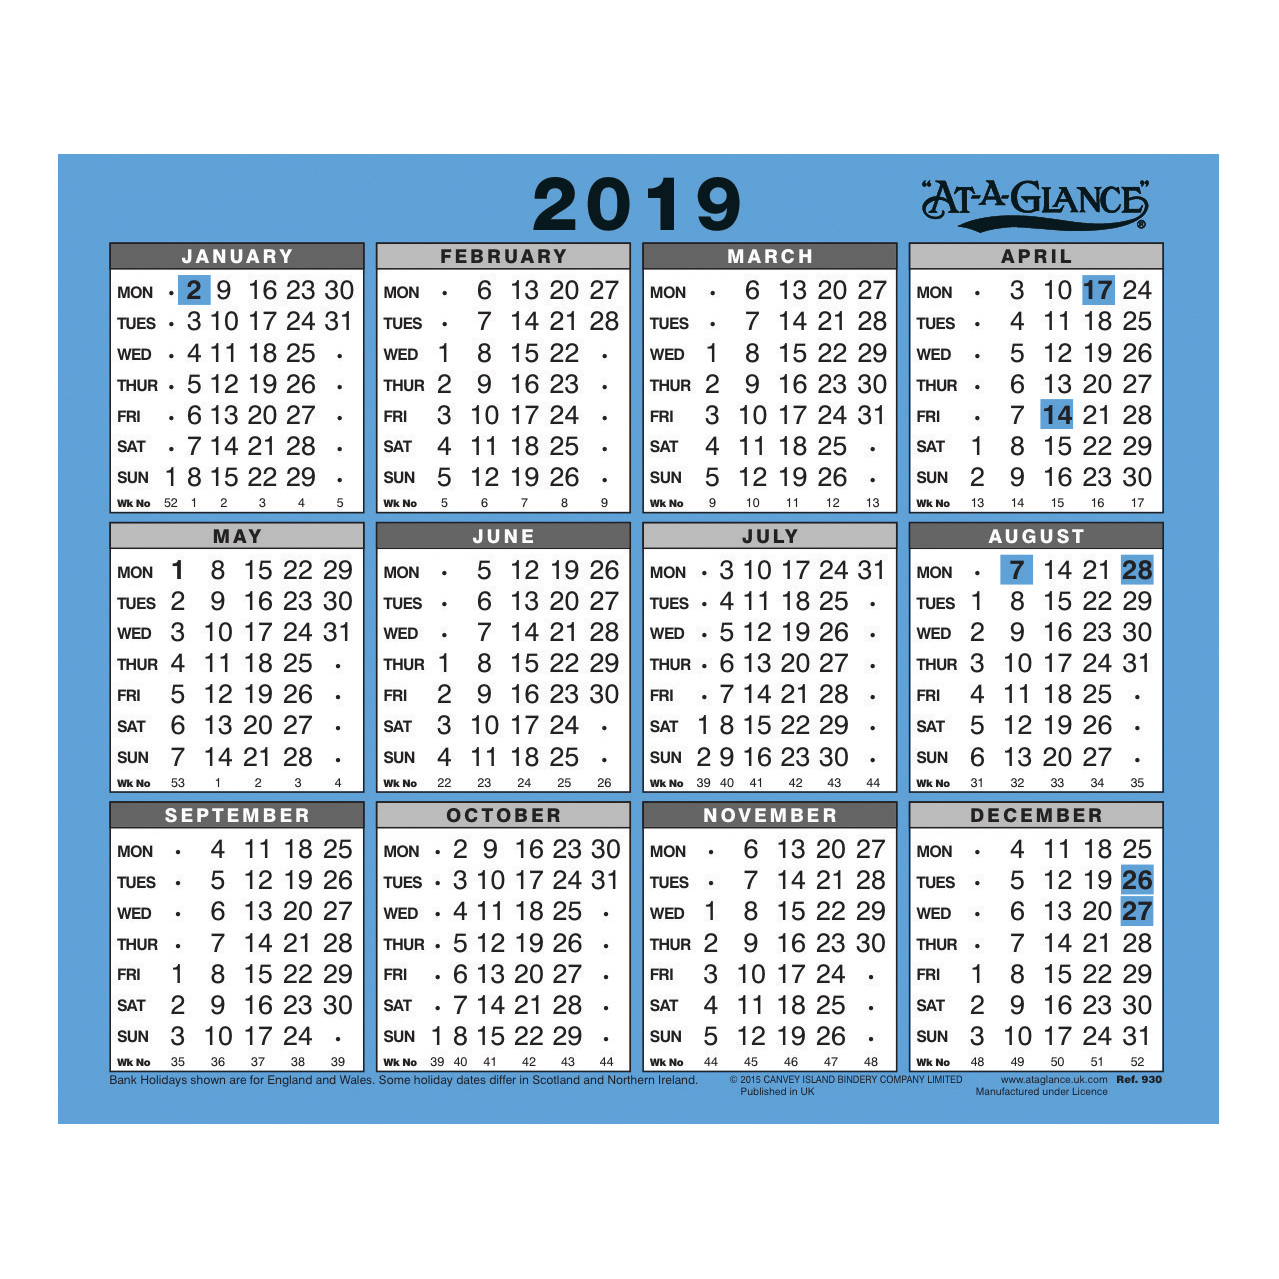 at a glance 2019 walldesk calendar year to view gloss board binding 254x210mm whiteblue ref 930 2019